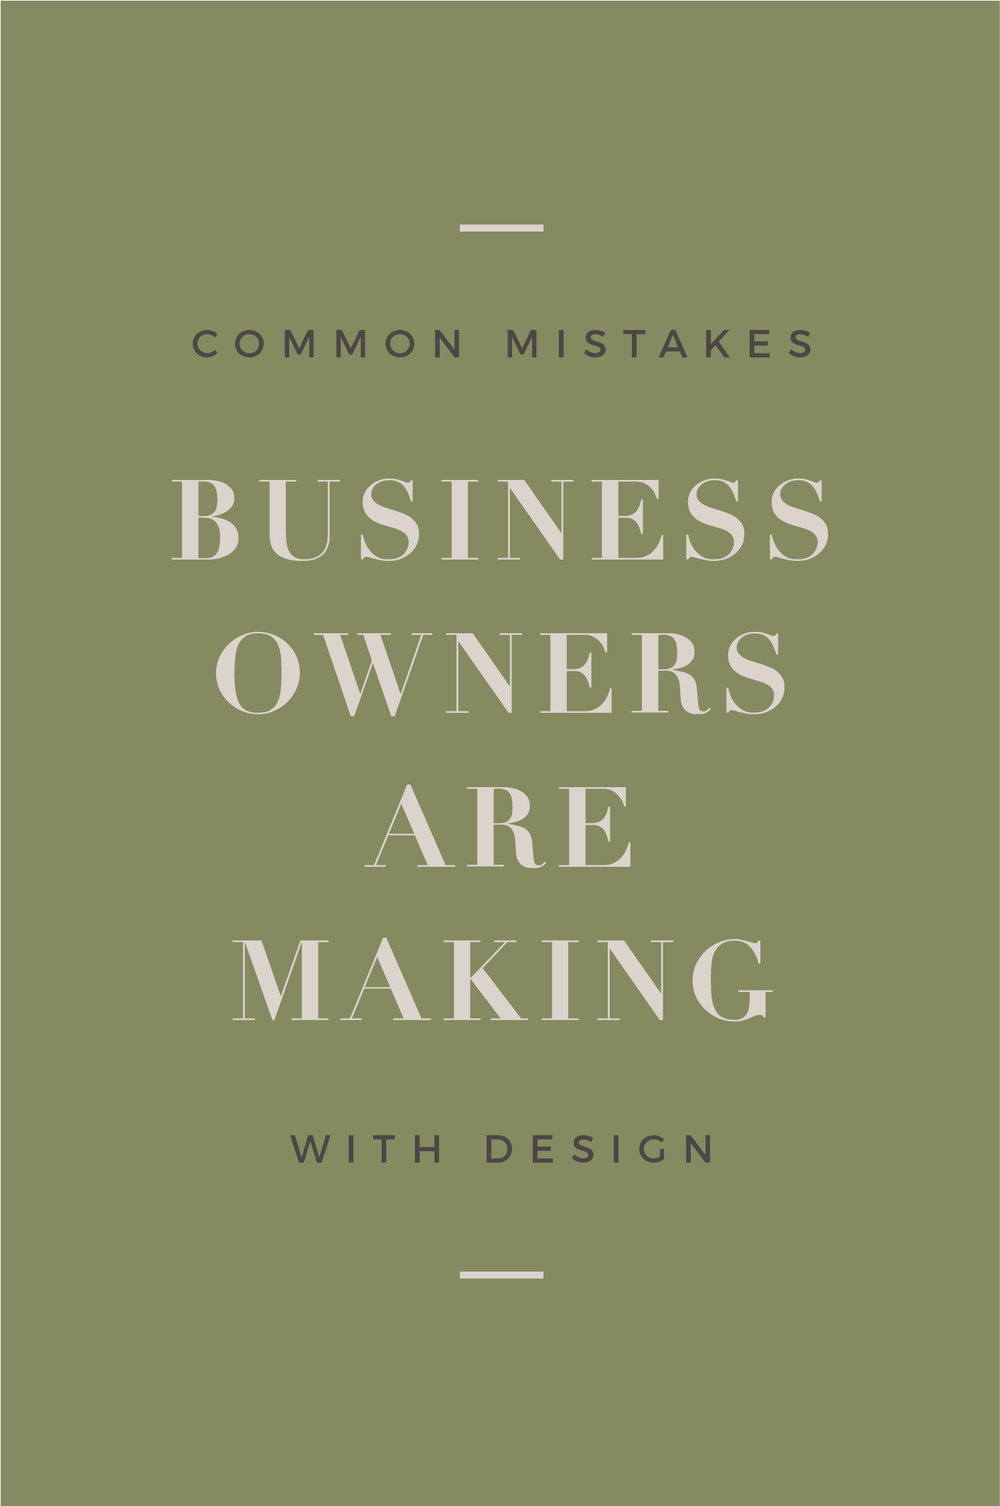 common mistakes business owners are making with design